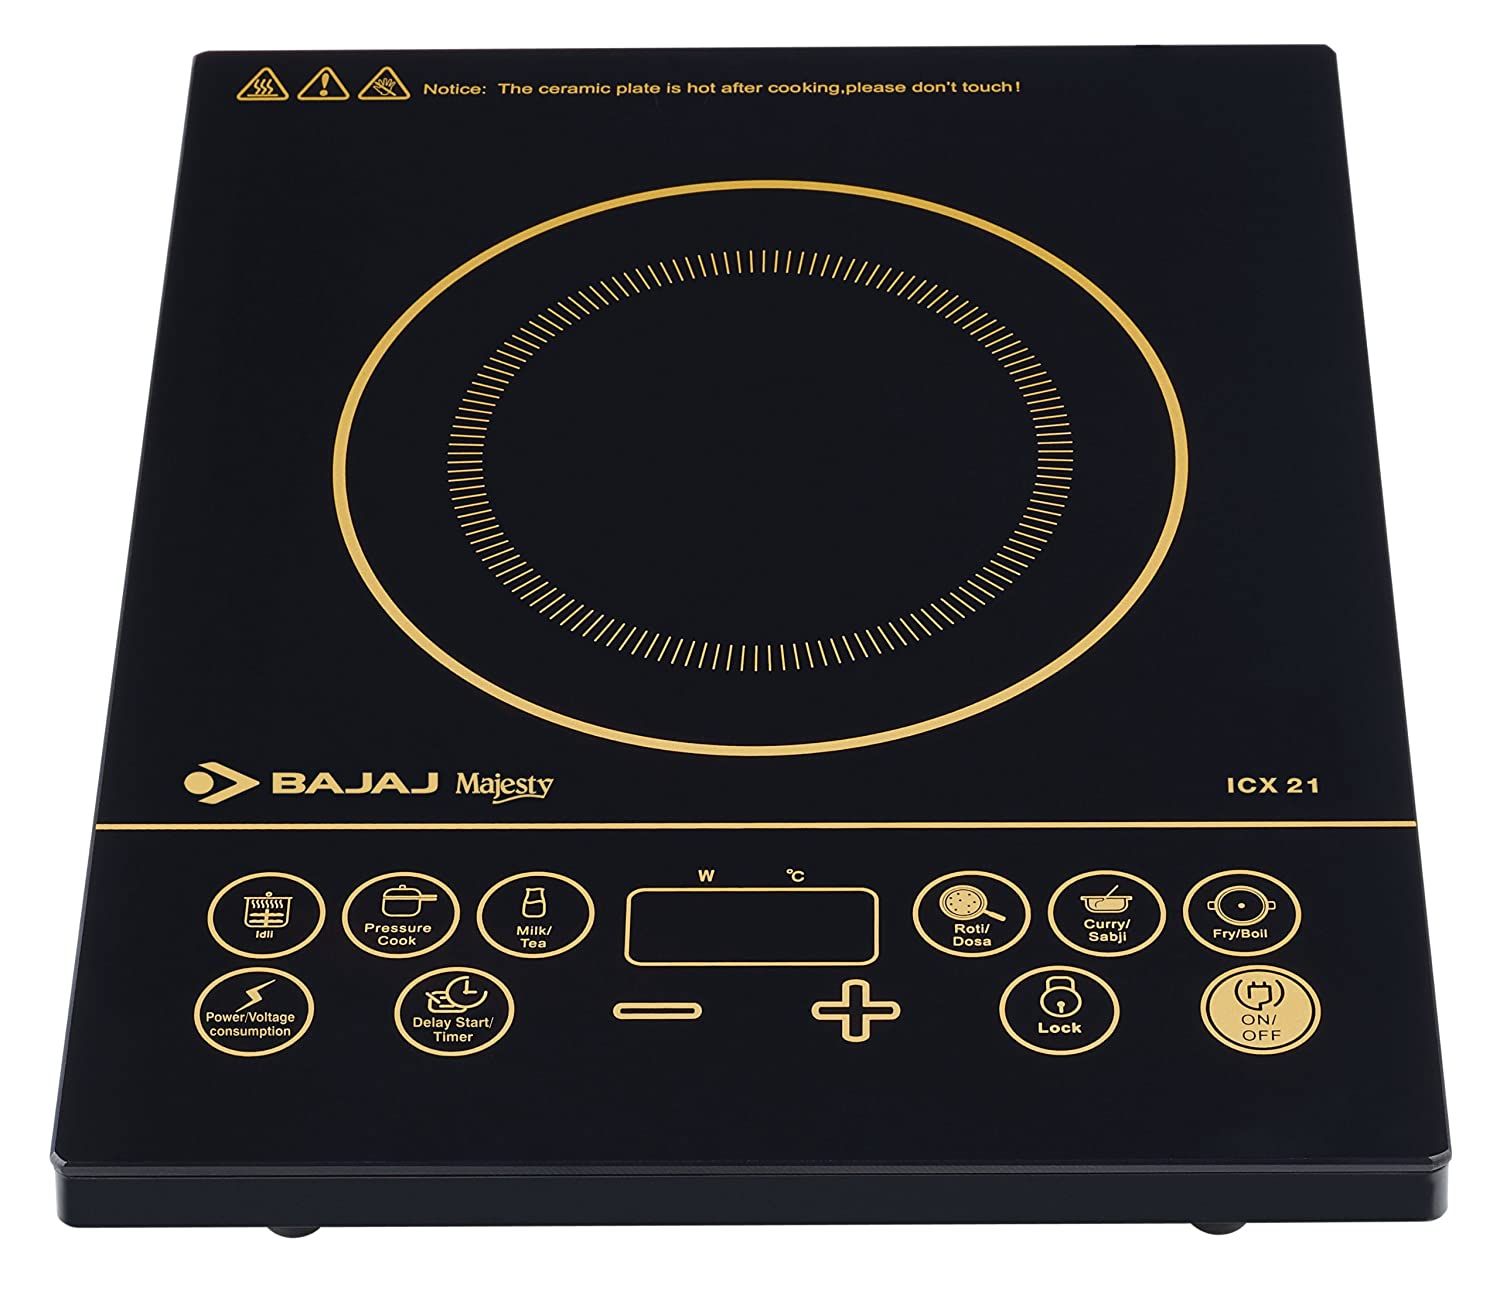 Buy Bajaj Majesty ICX 21 2000-Watt Induction Cooktop Online at Low Prices  in India - Amazon.in